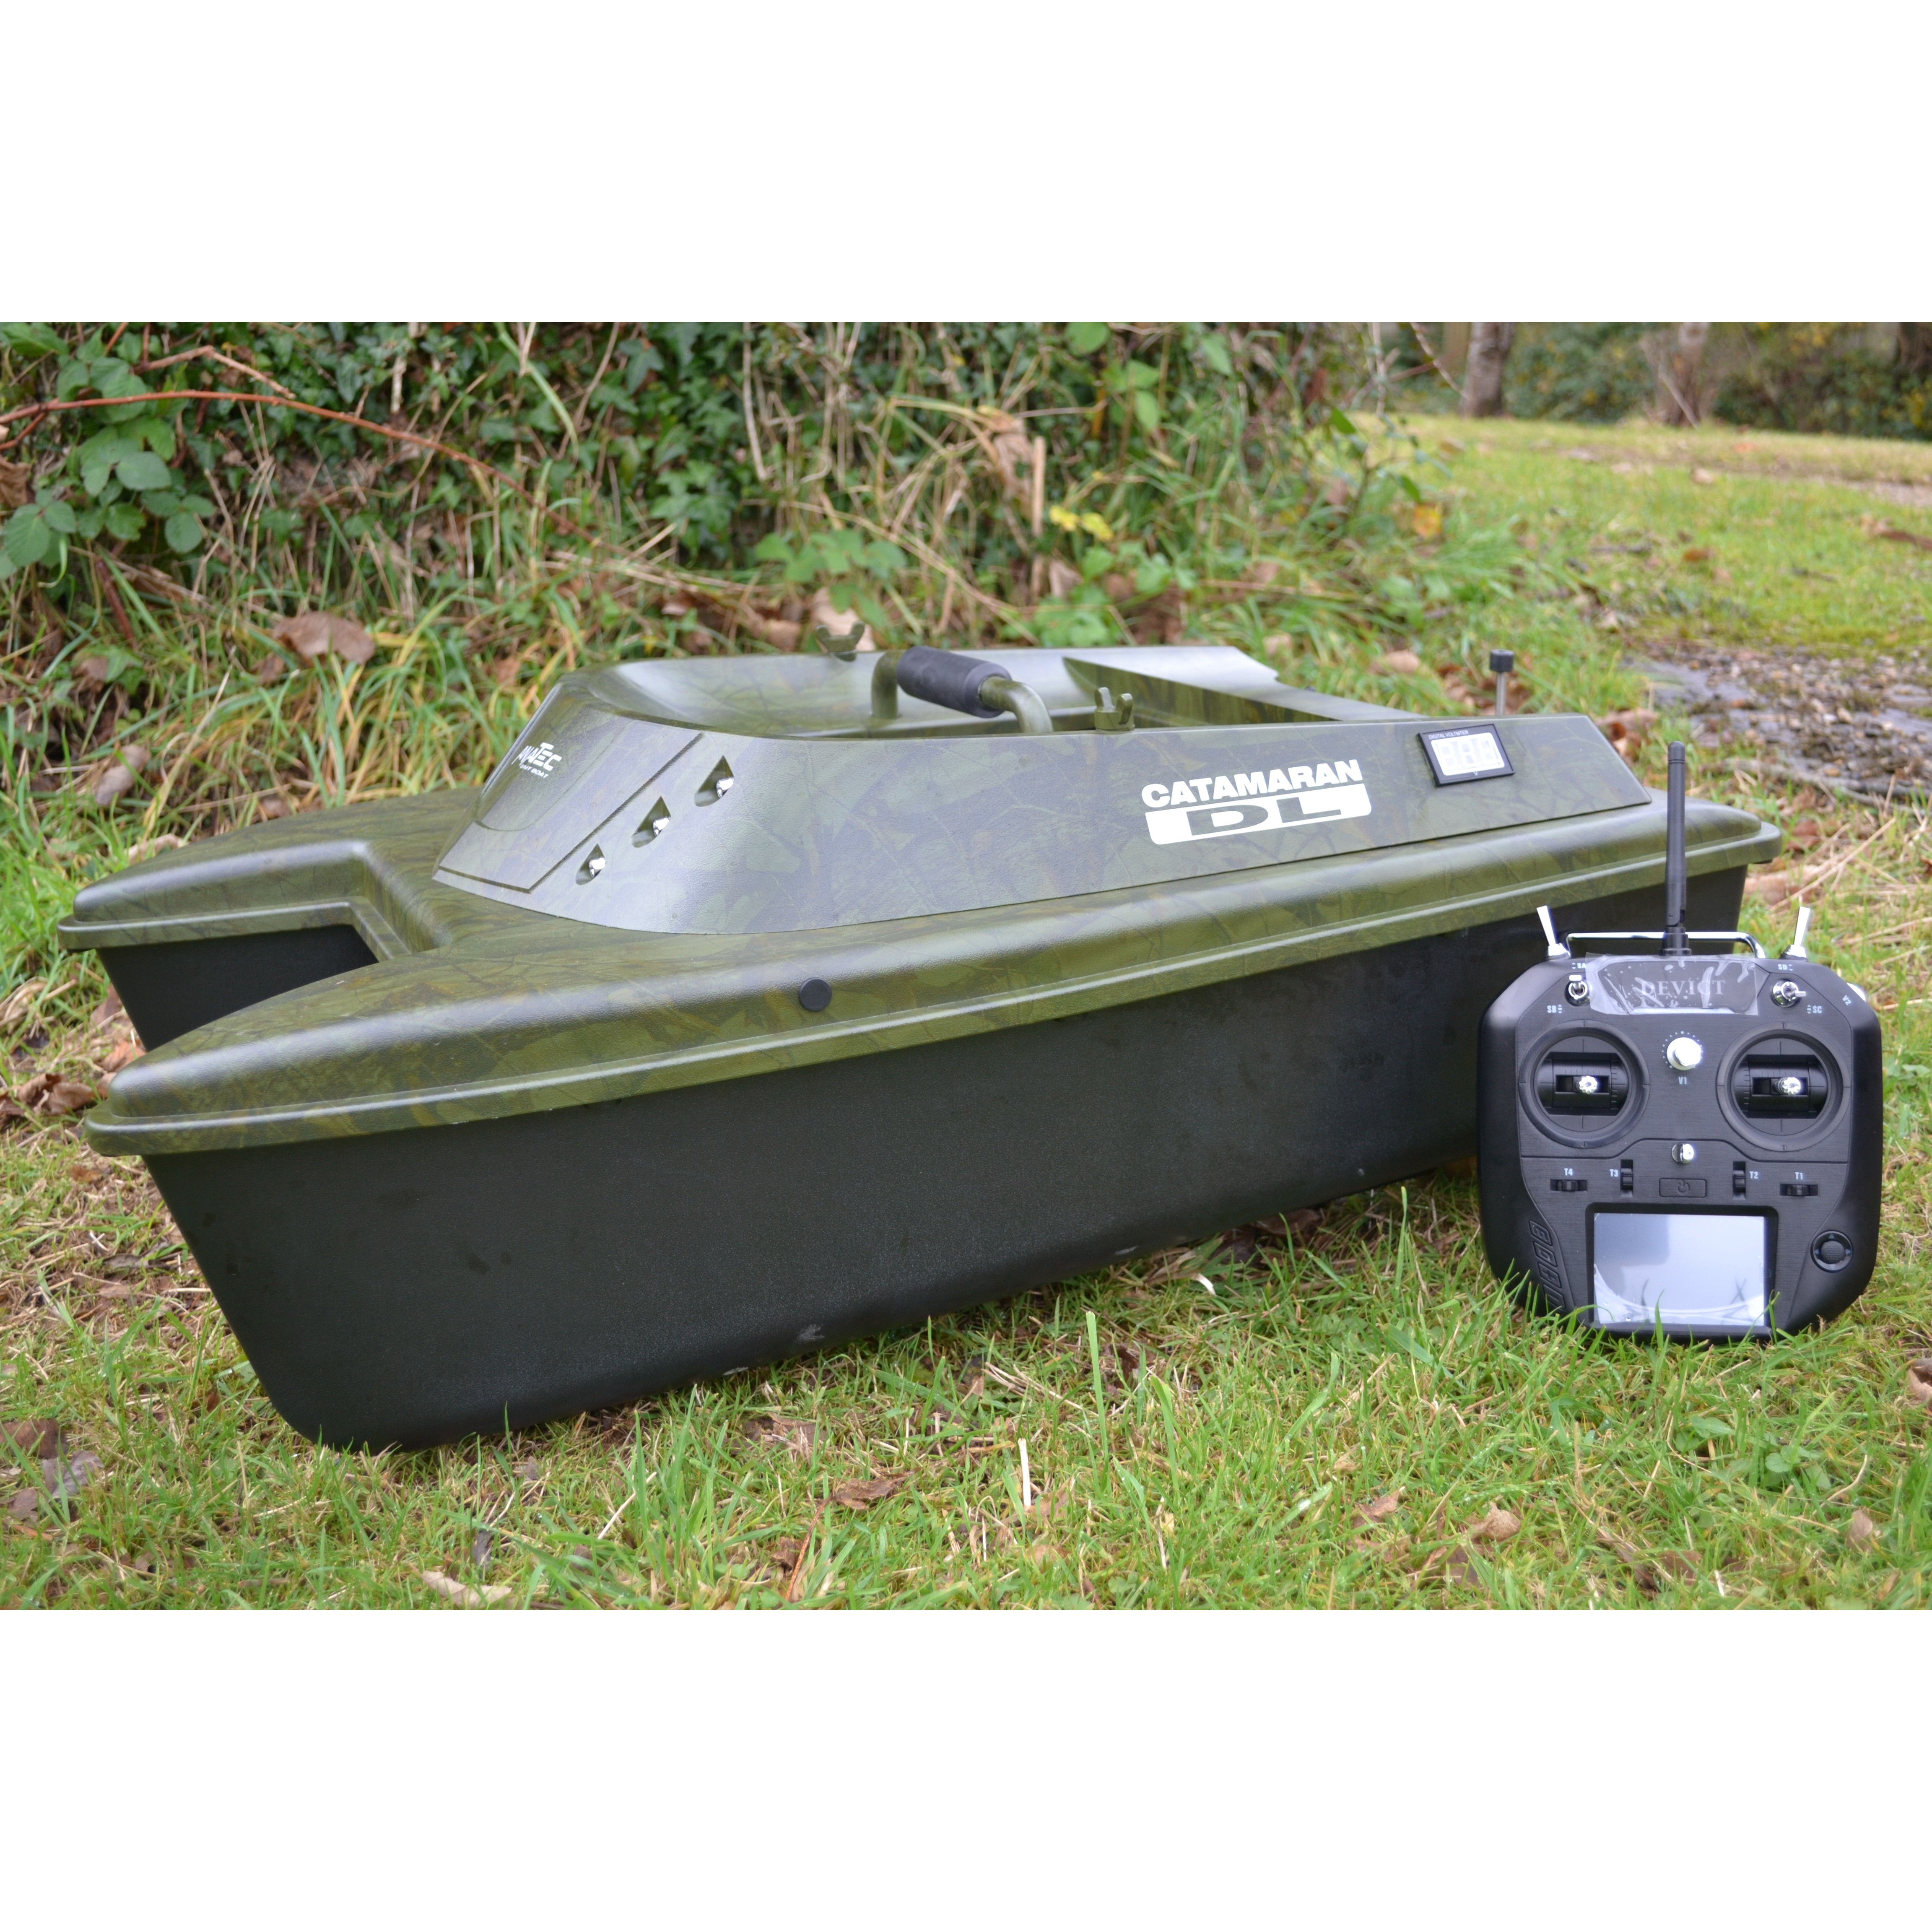 ... anatec devict 2018 bait boat Display Gallery Item 4 ...